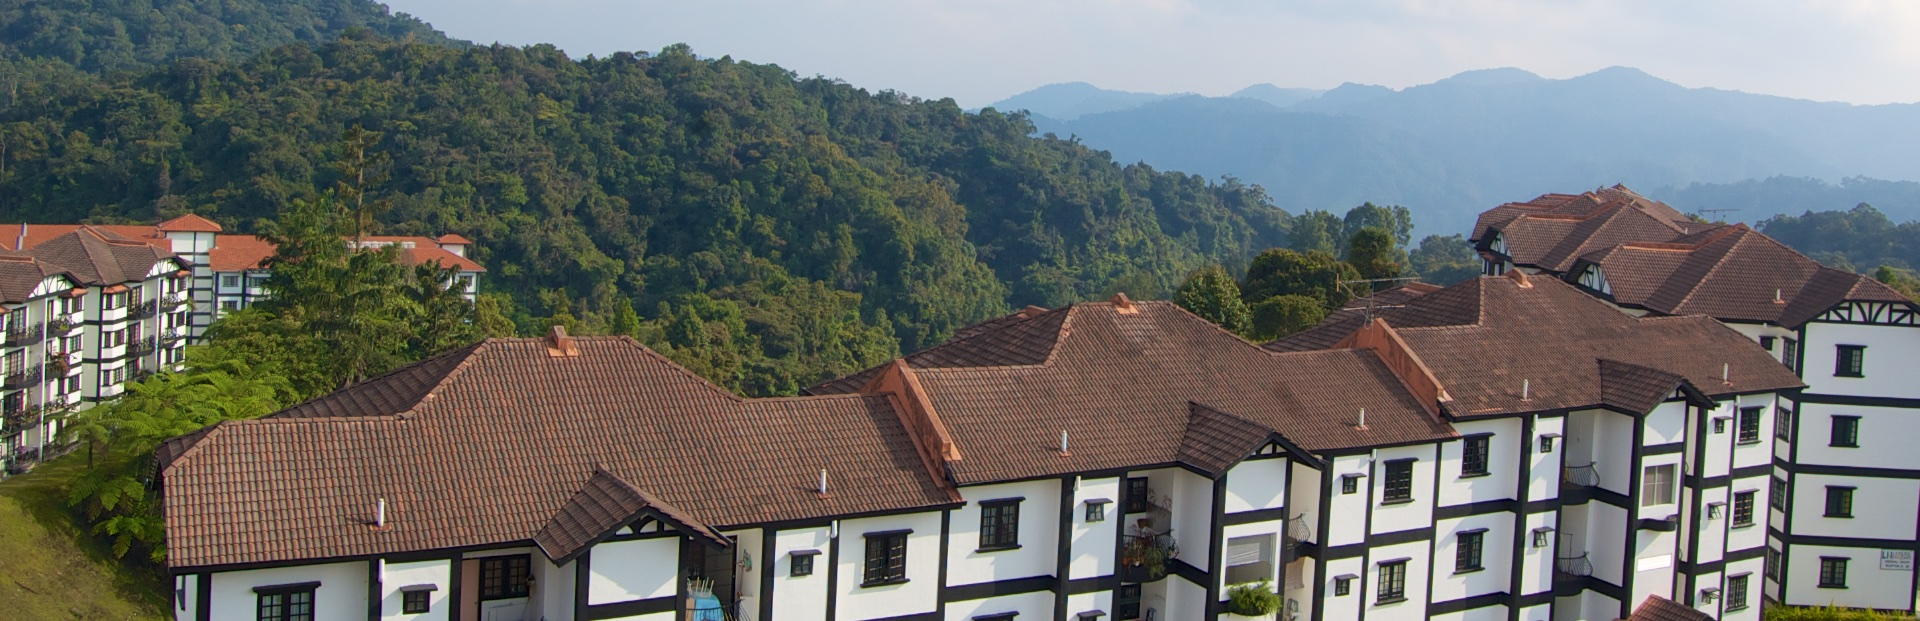 Cameron Highlands: Что это за место такое?